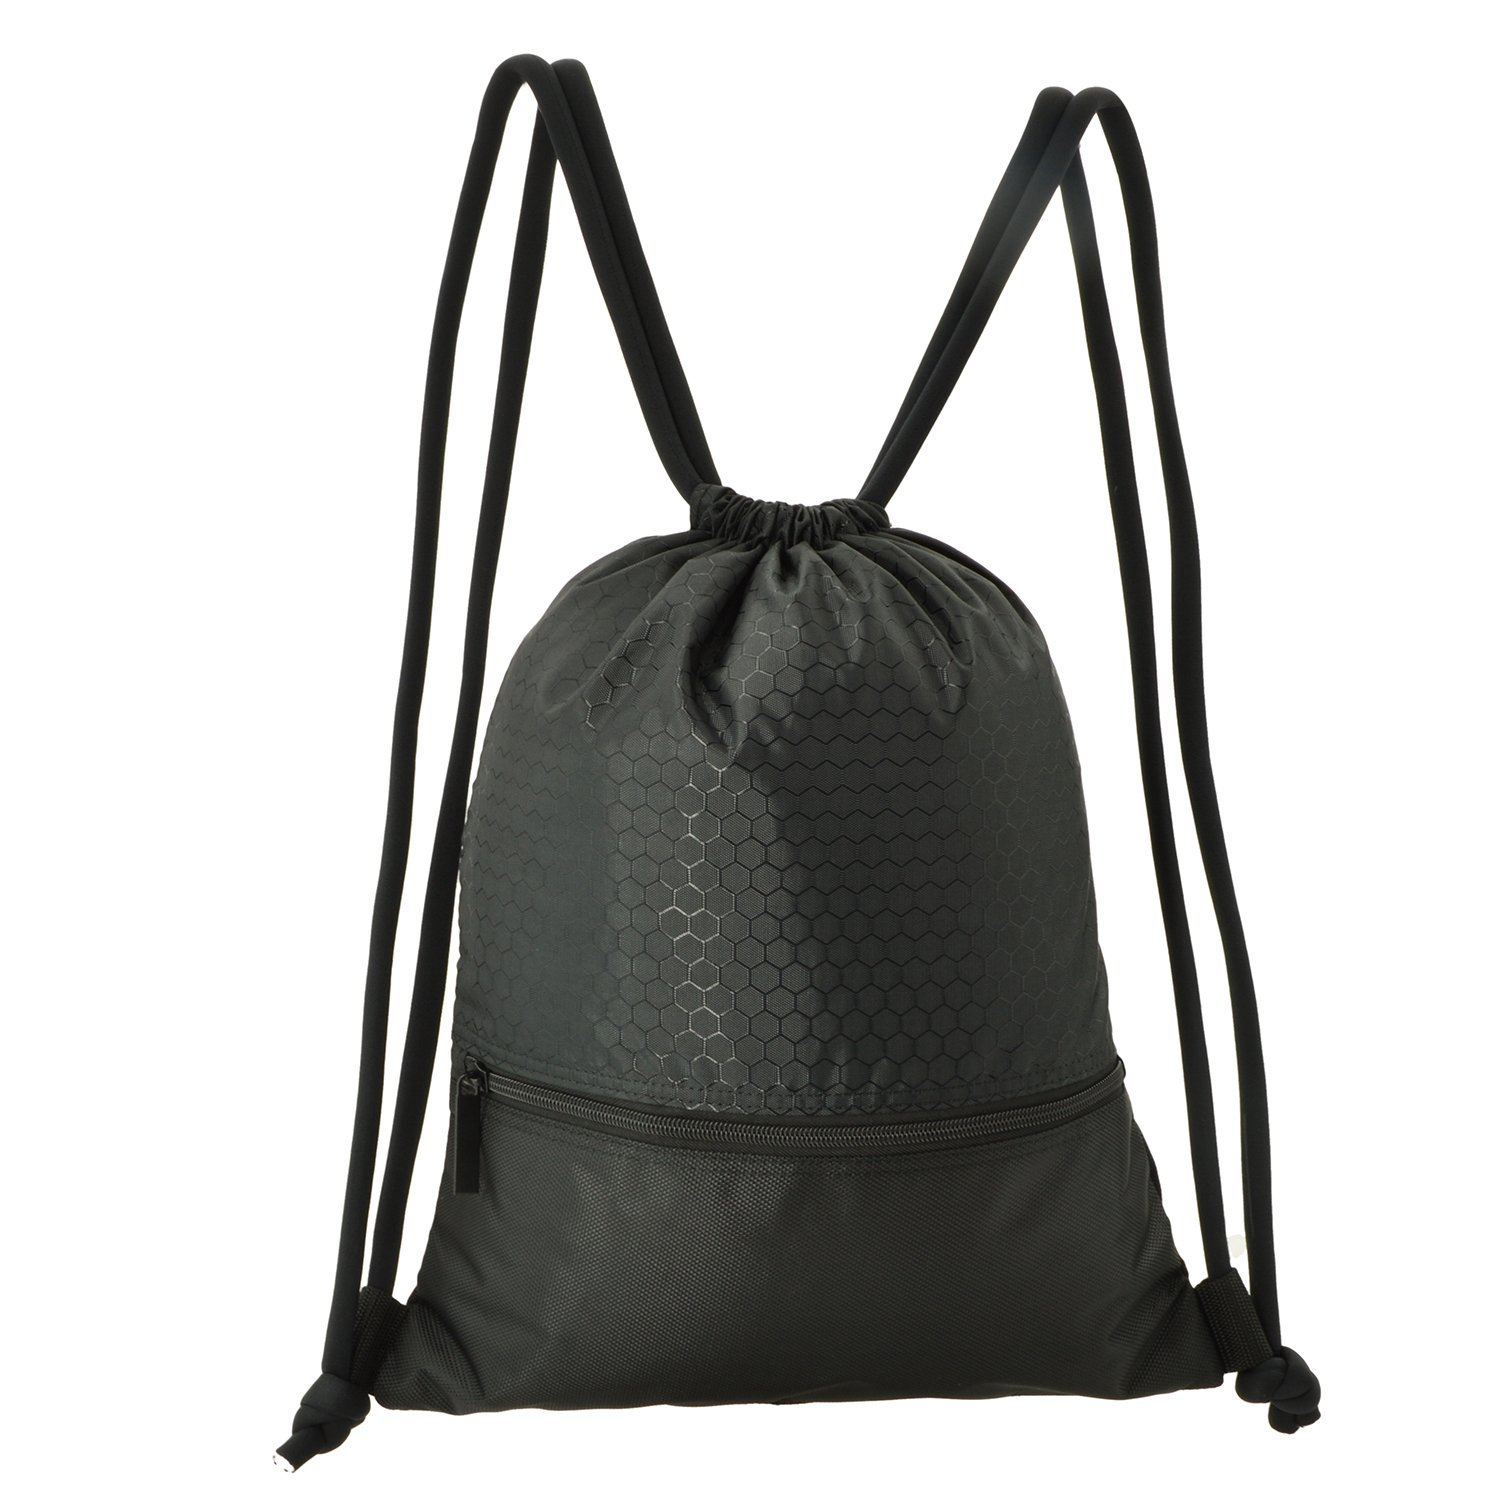 641a53ba3a7c WinCret Drawstring Backpack Gym Bags for Men Women Kids - Waterproof Sackpack  Gymsack with Large Zipper Pocket for Basketball, Travel, and Other Sports